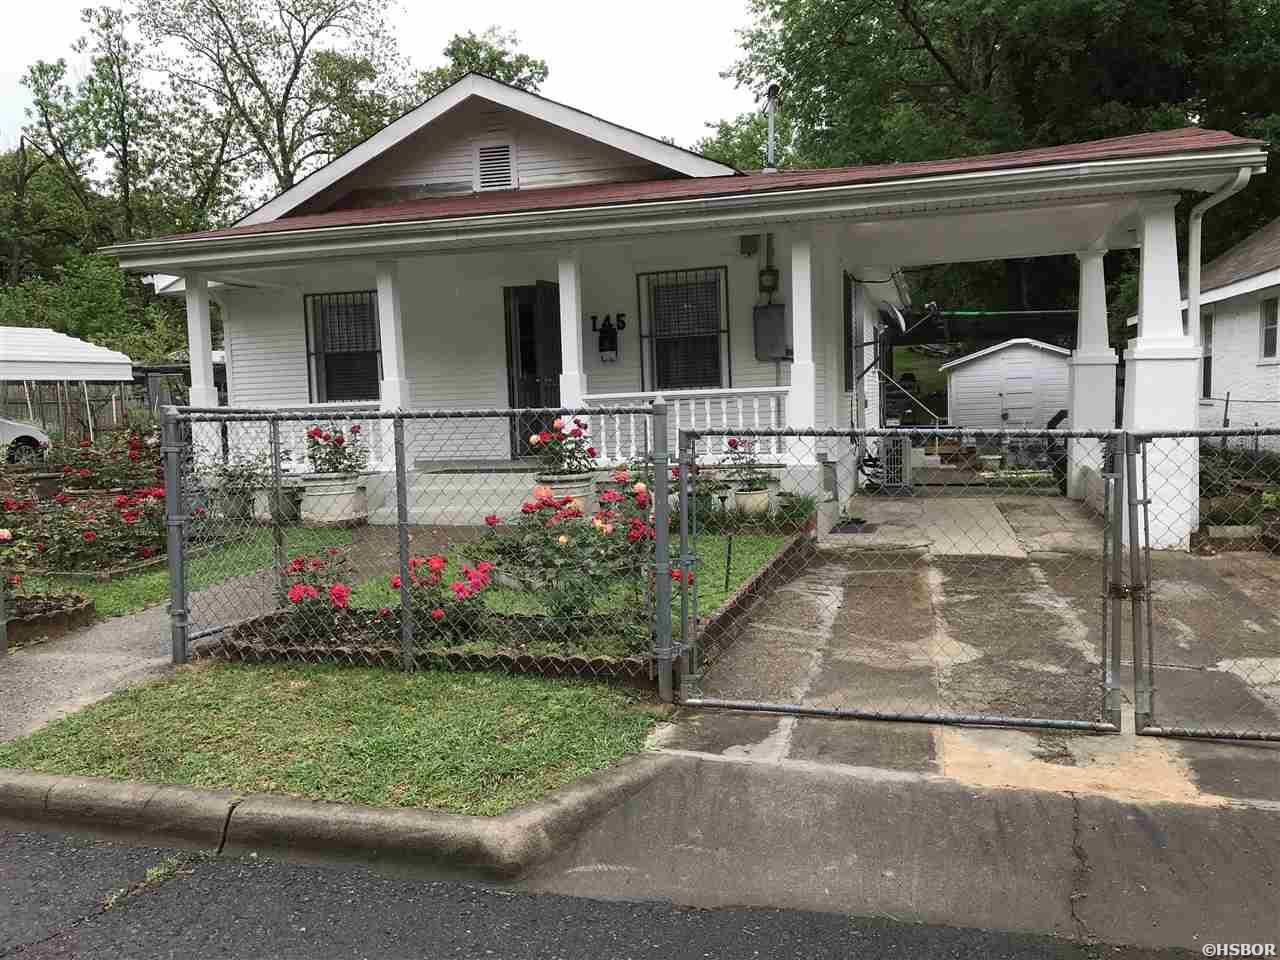 Listing 145 centerview hot springs ar mls 121827 1st choice property photo mightylinksfo